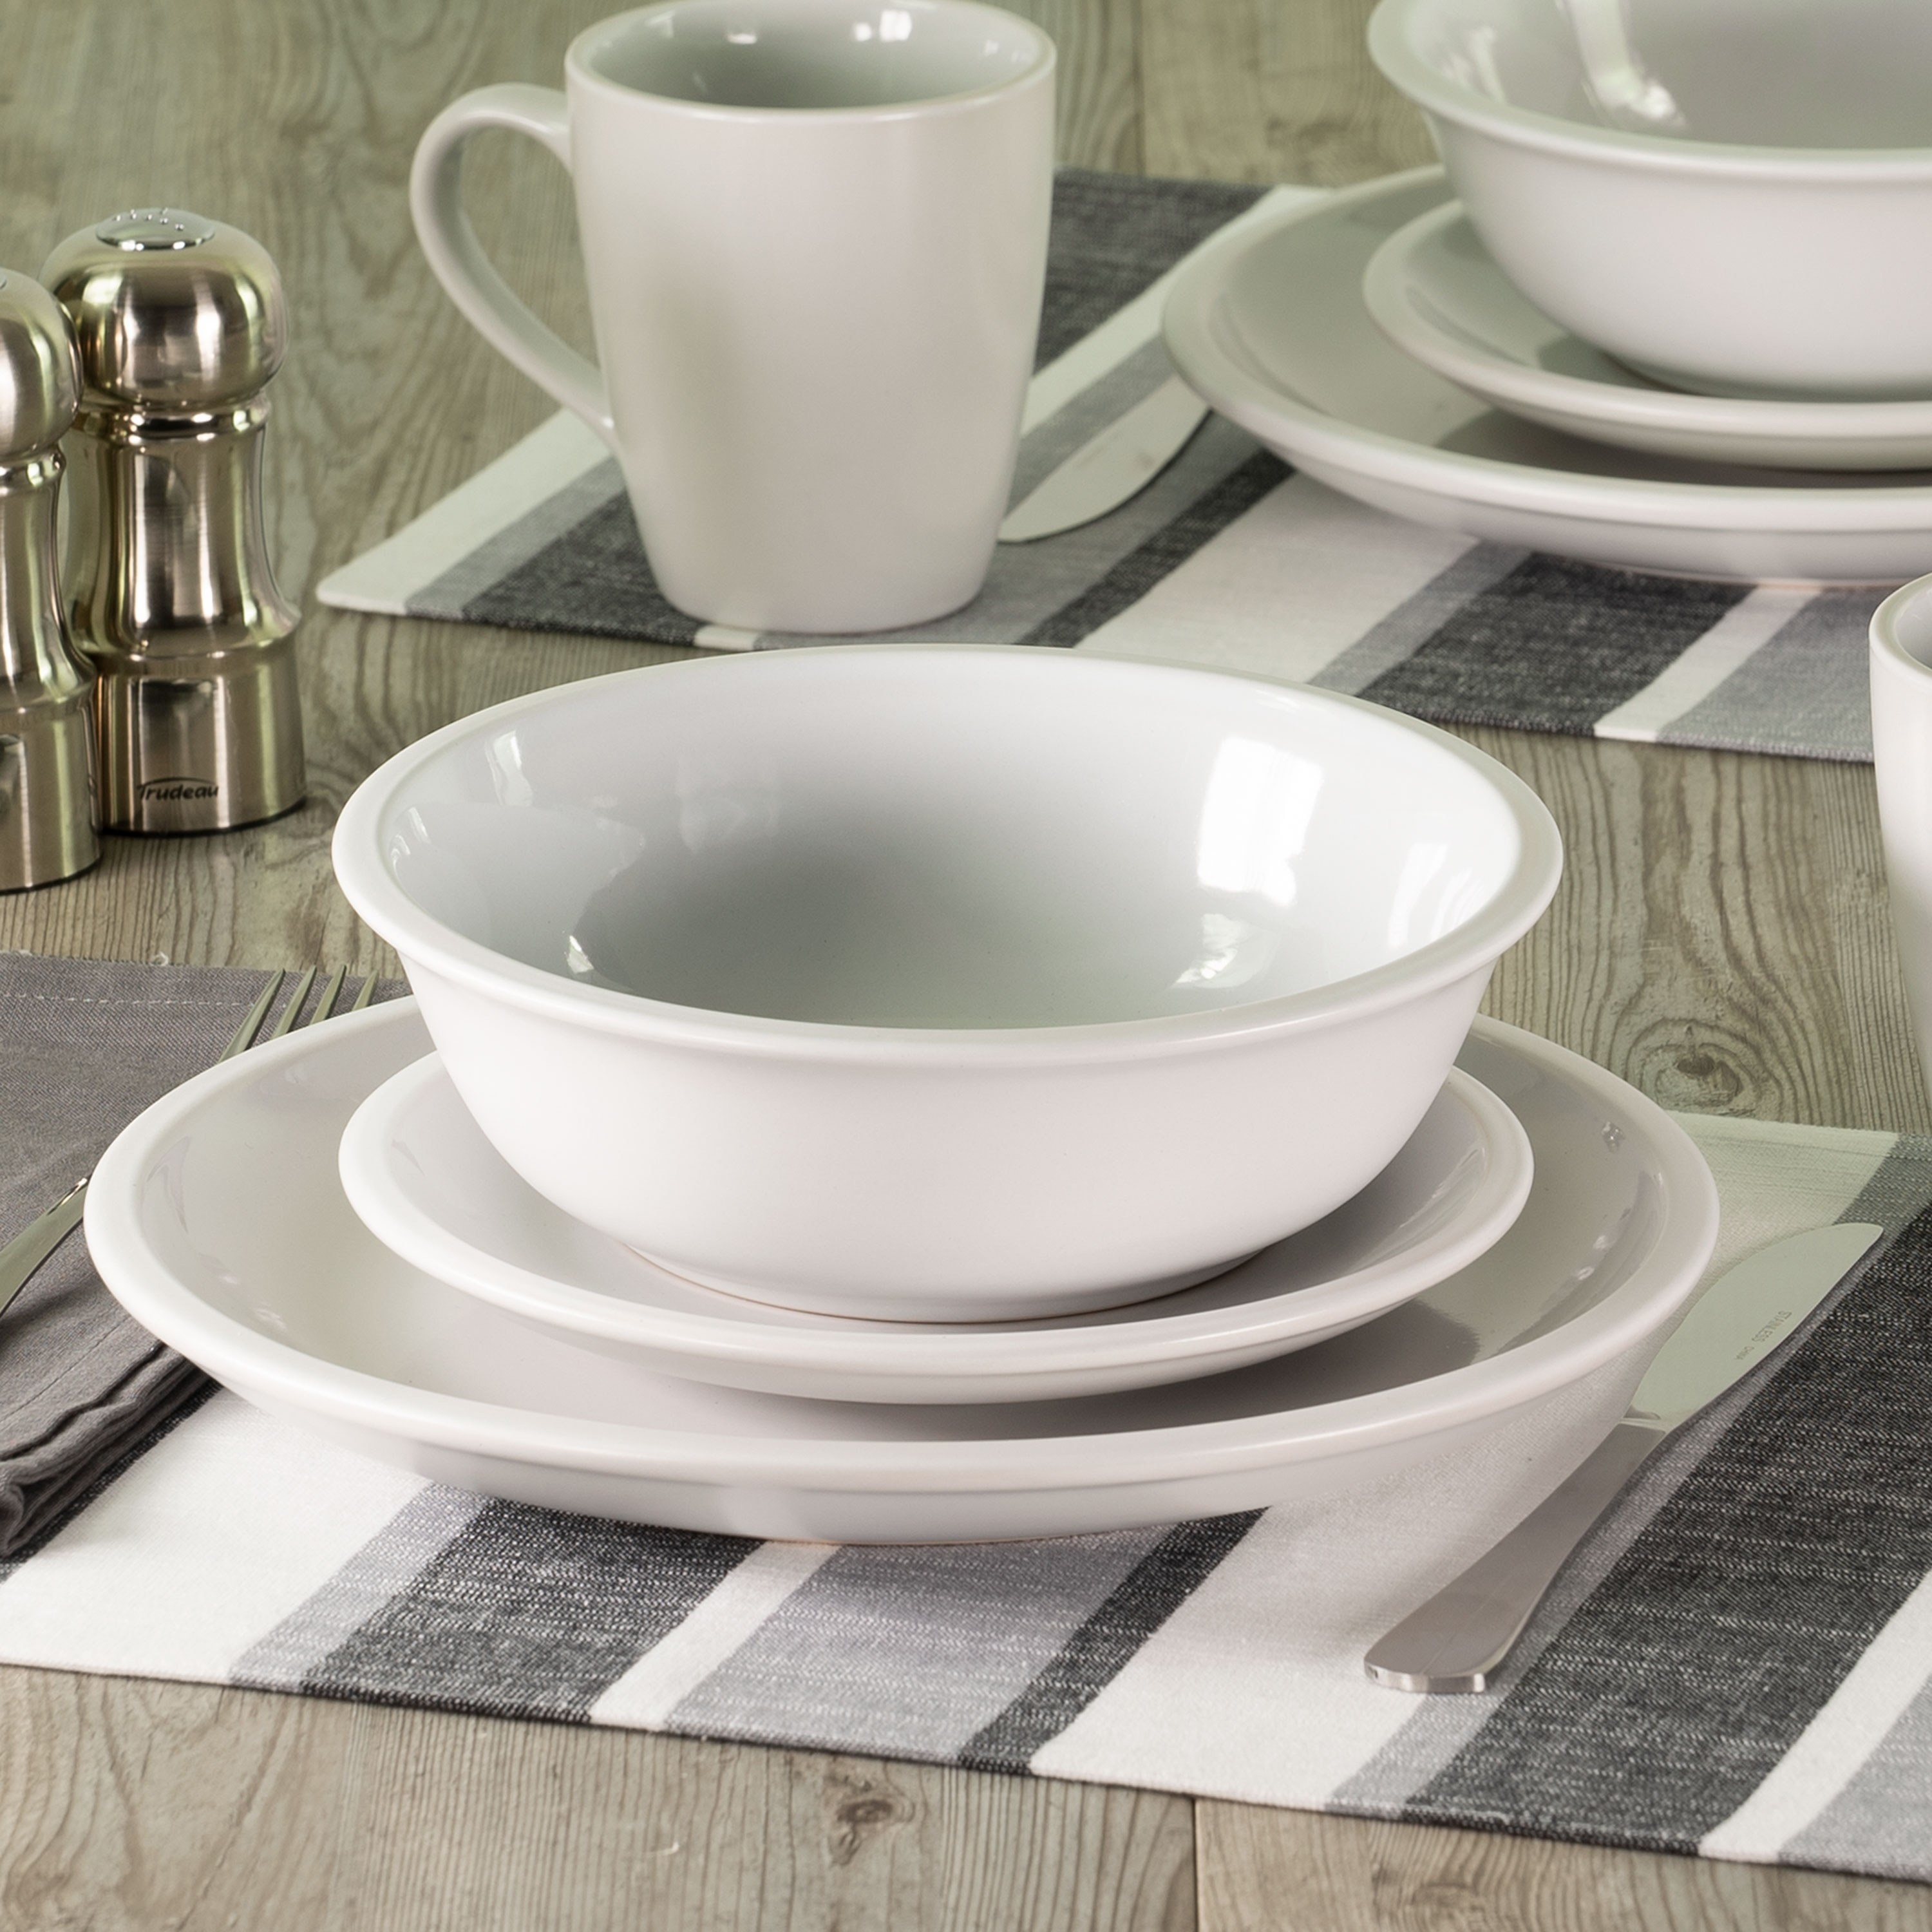 The white dinnerware on a table